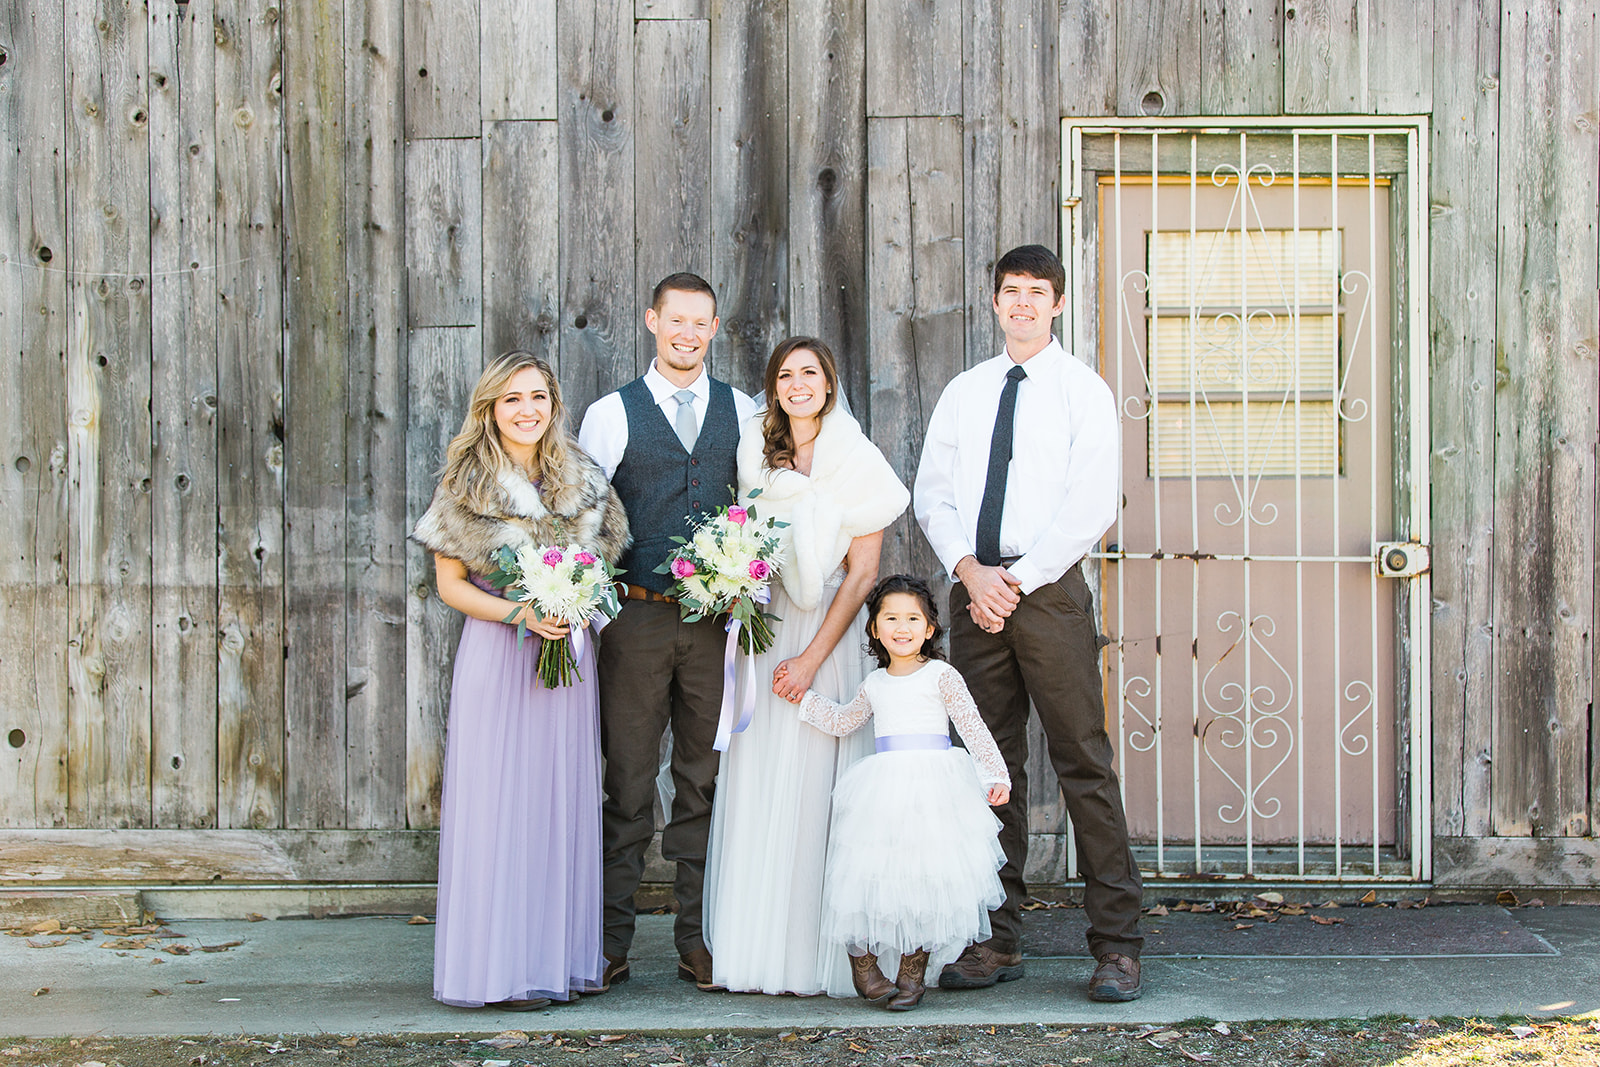 spokane wedding dress bridal party purple